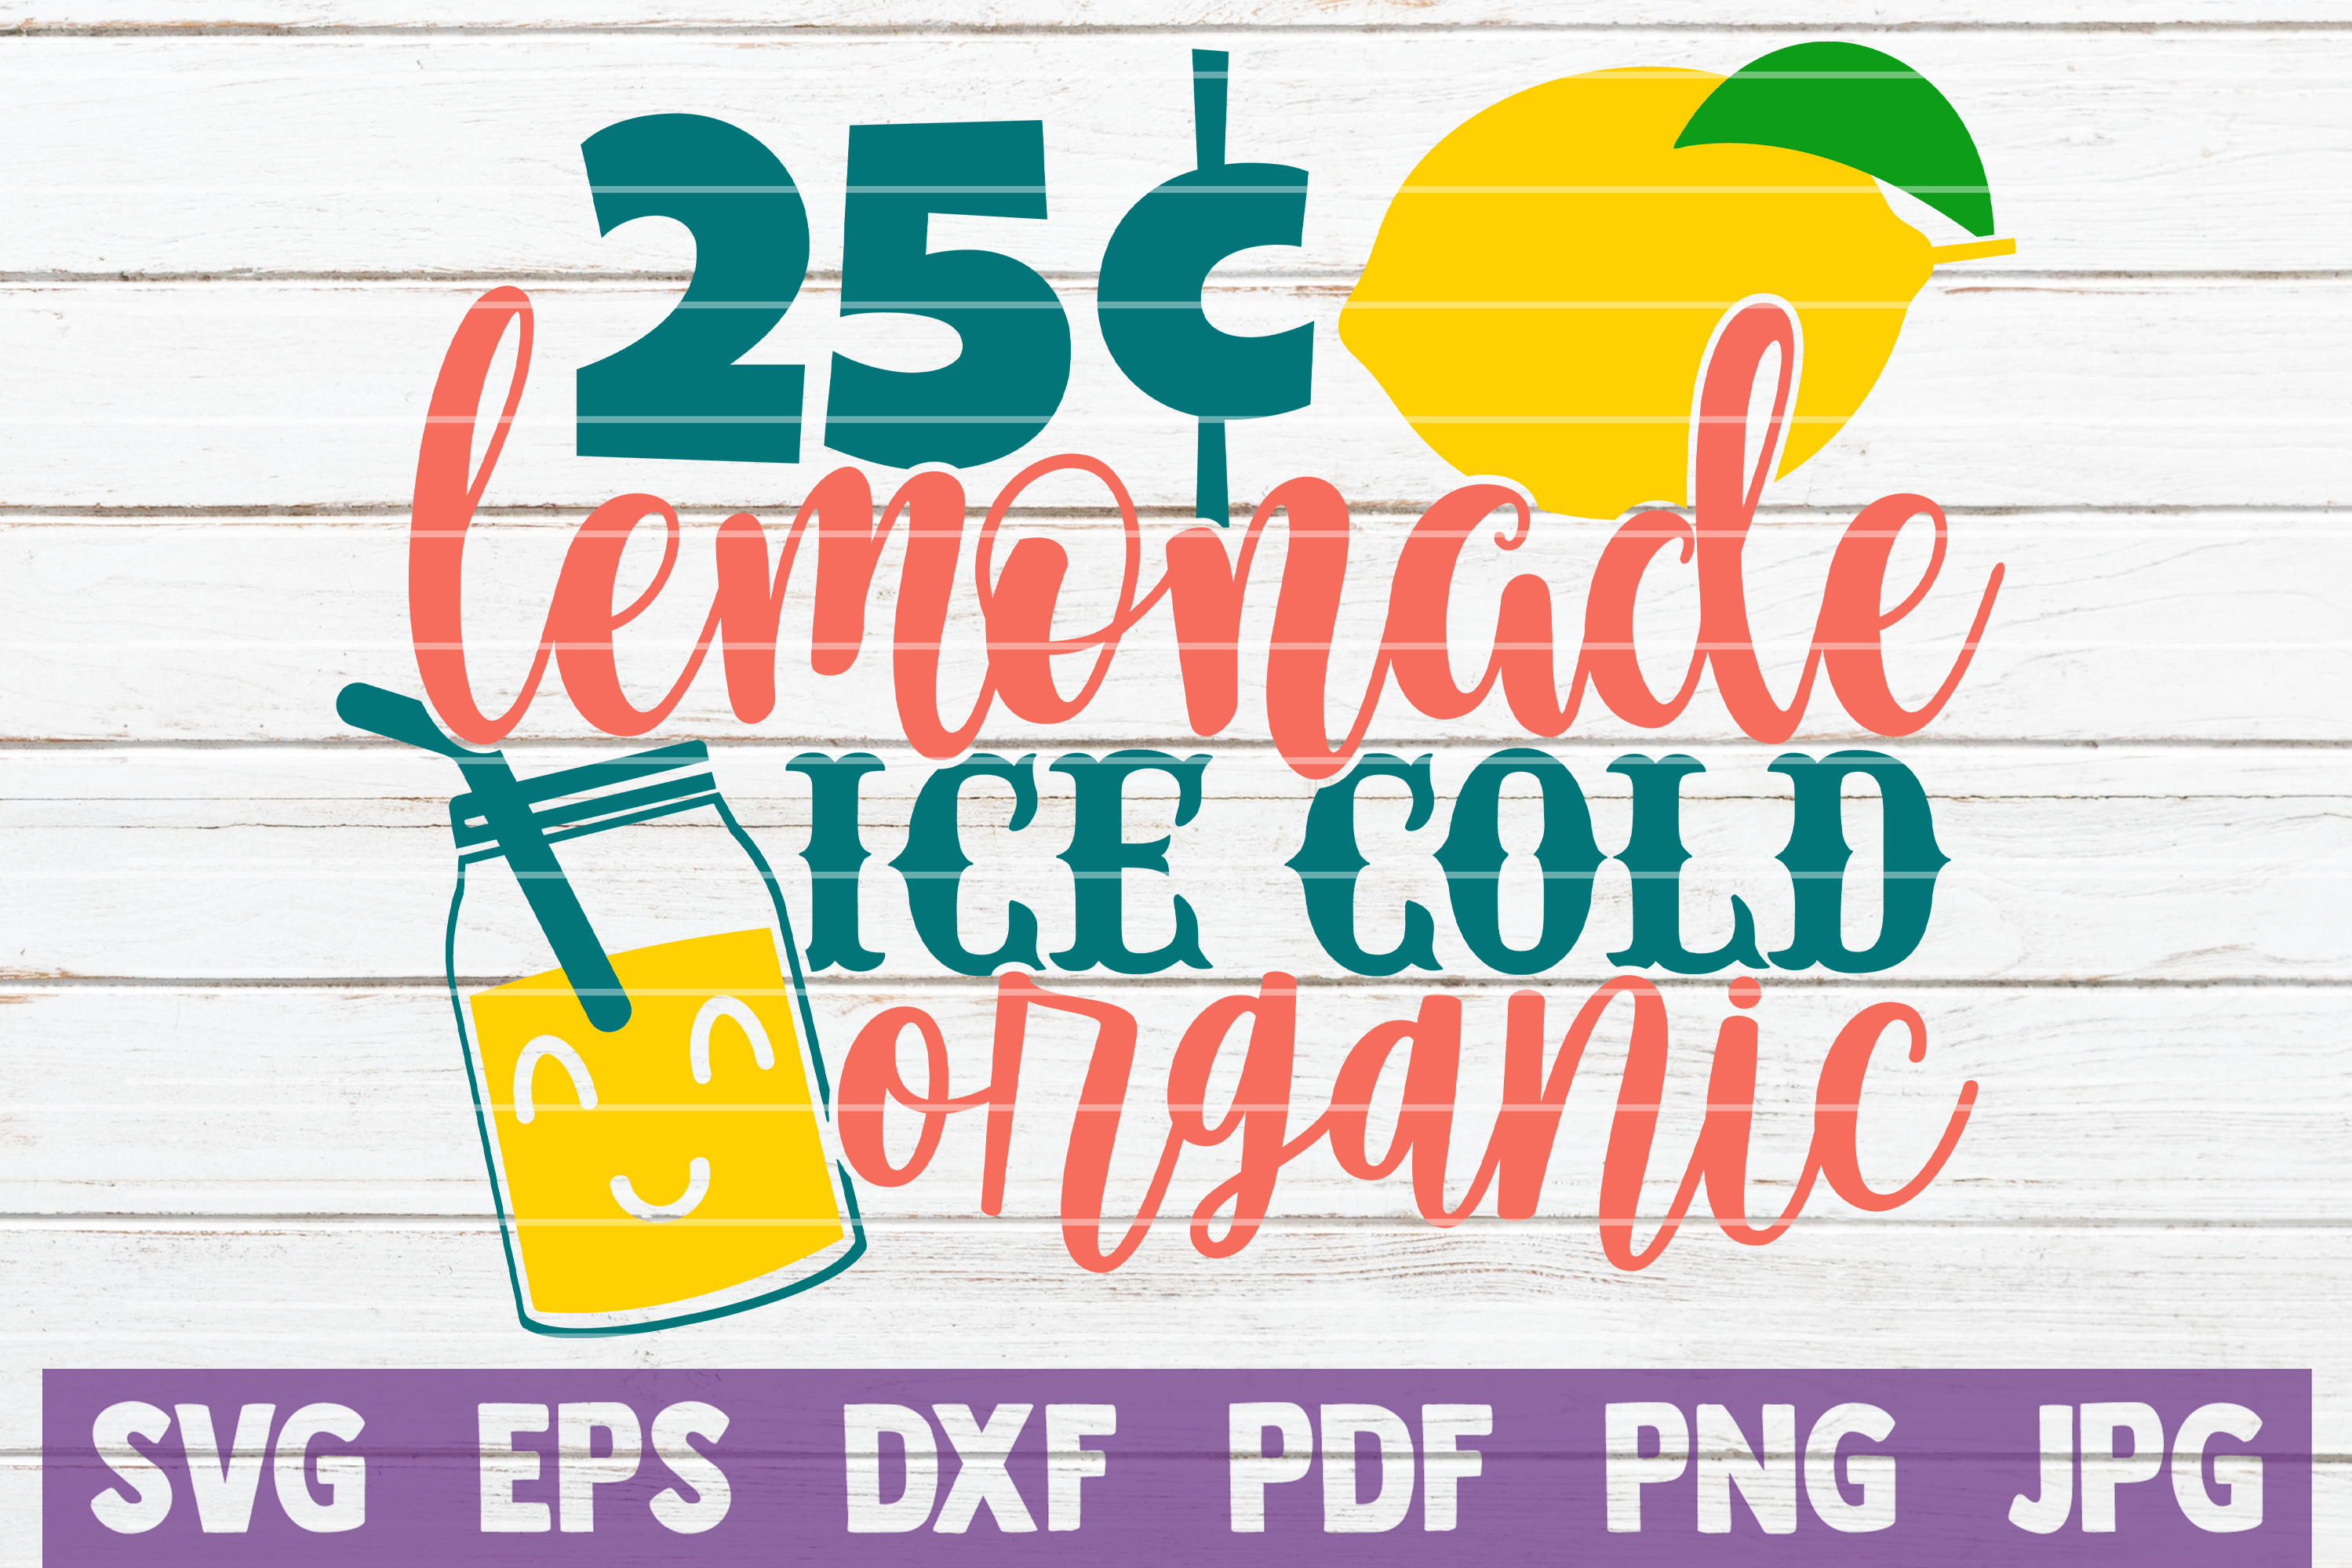 Download Free Lemonade Ice Cold Organic Graphic By Mintymarshmallows for Cricut Explore, Silhouette and other cutting machines.